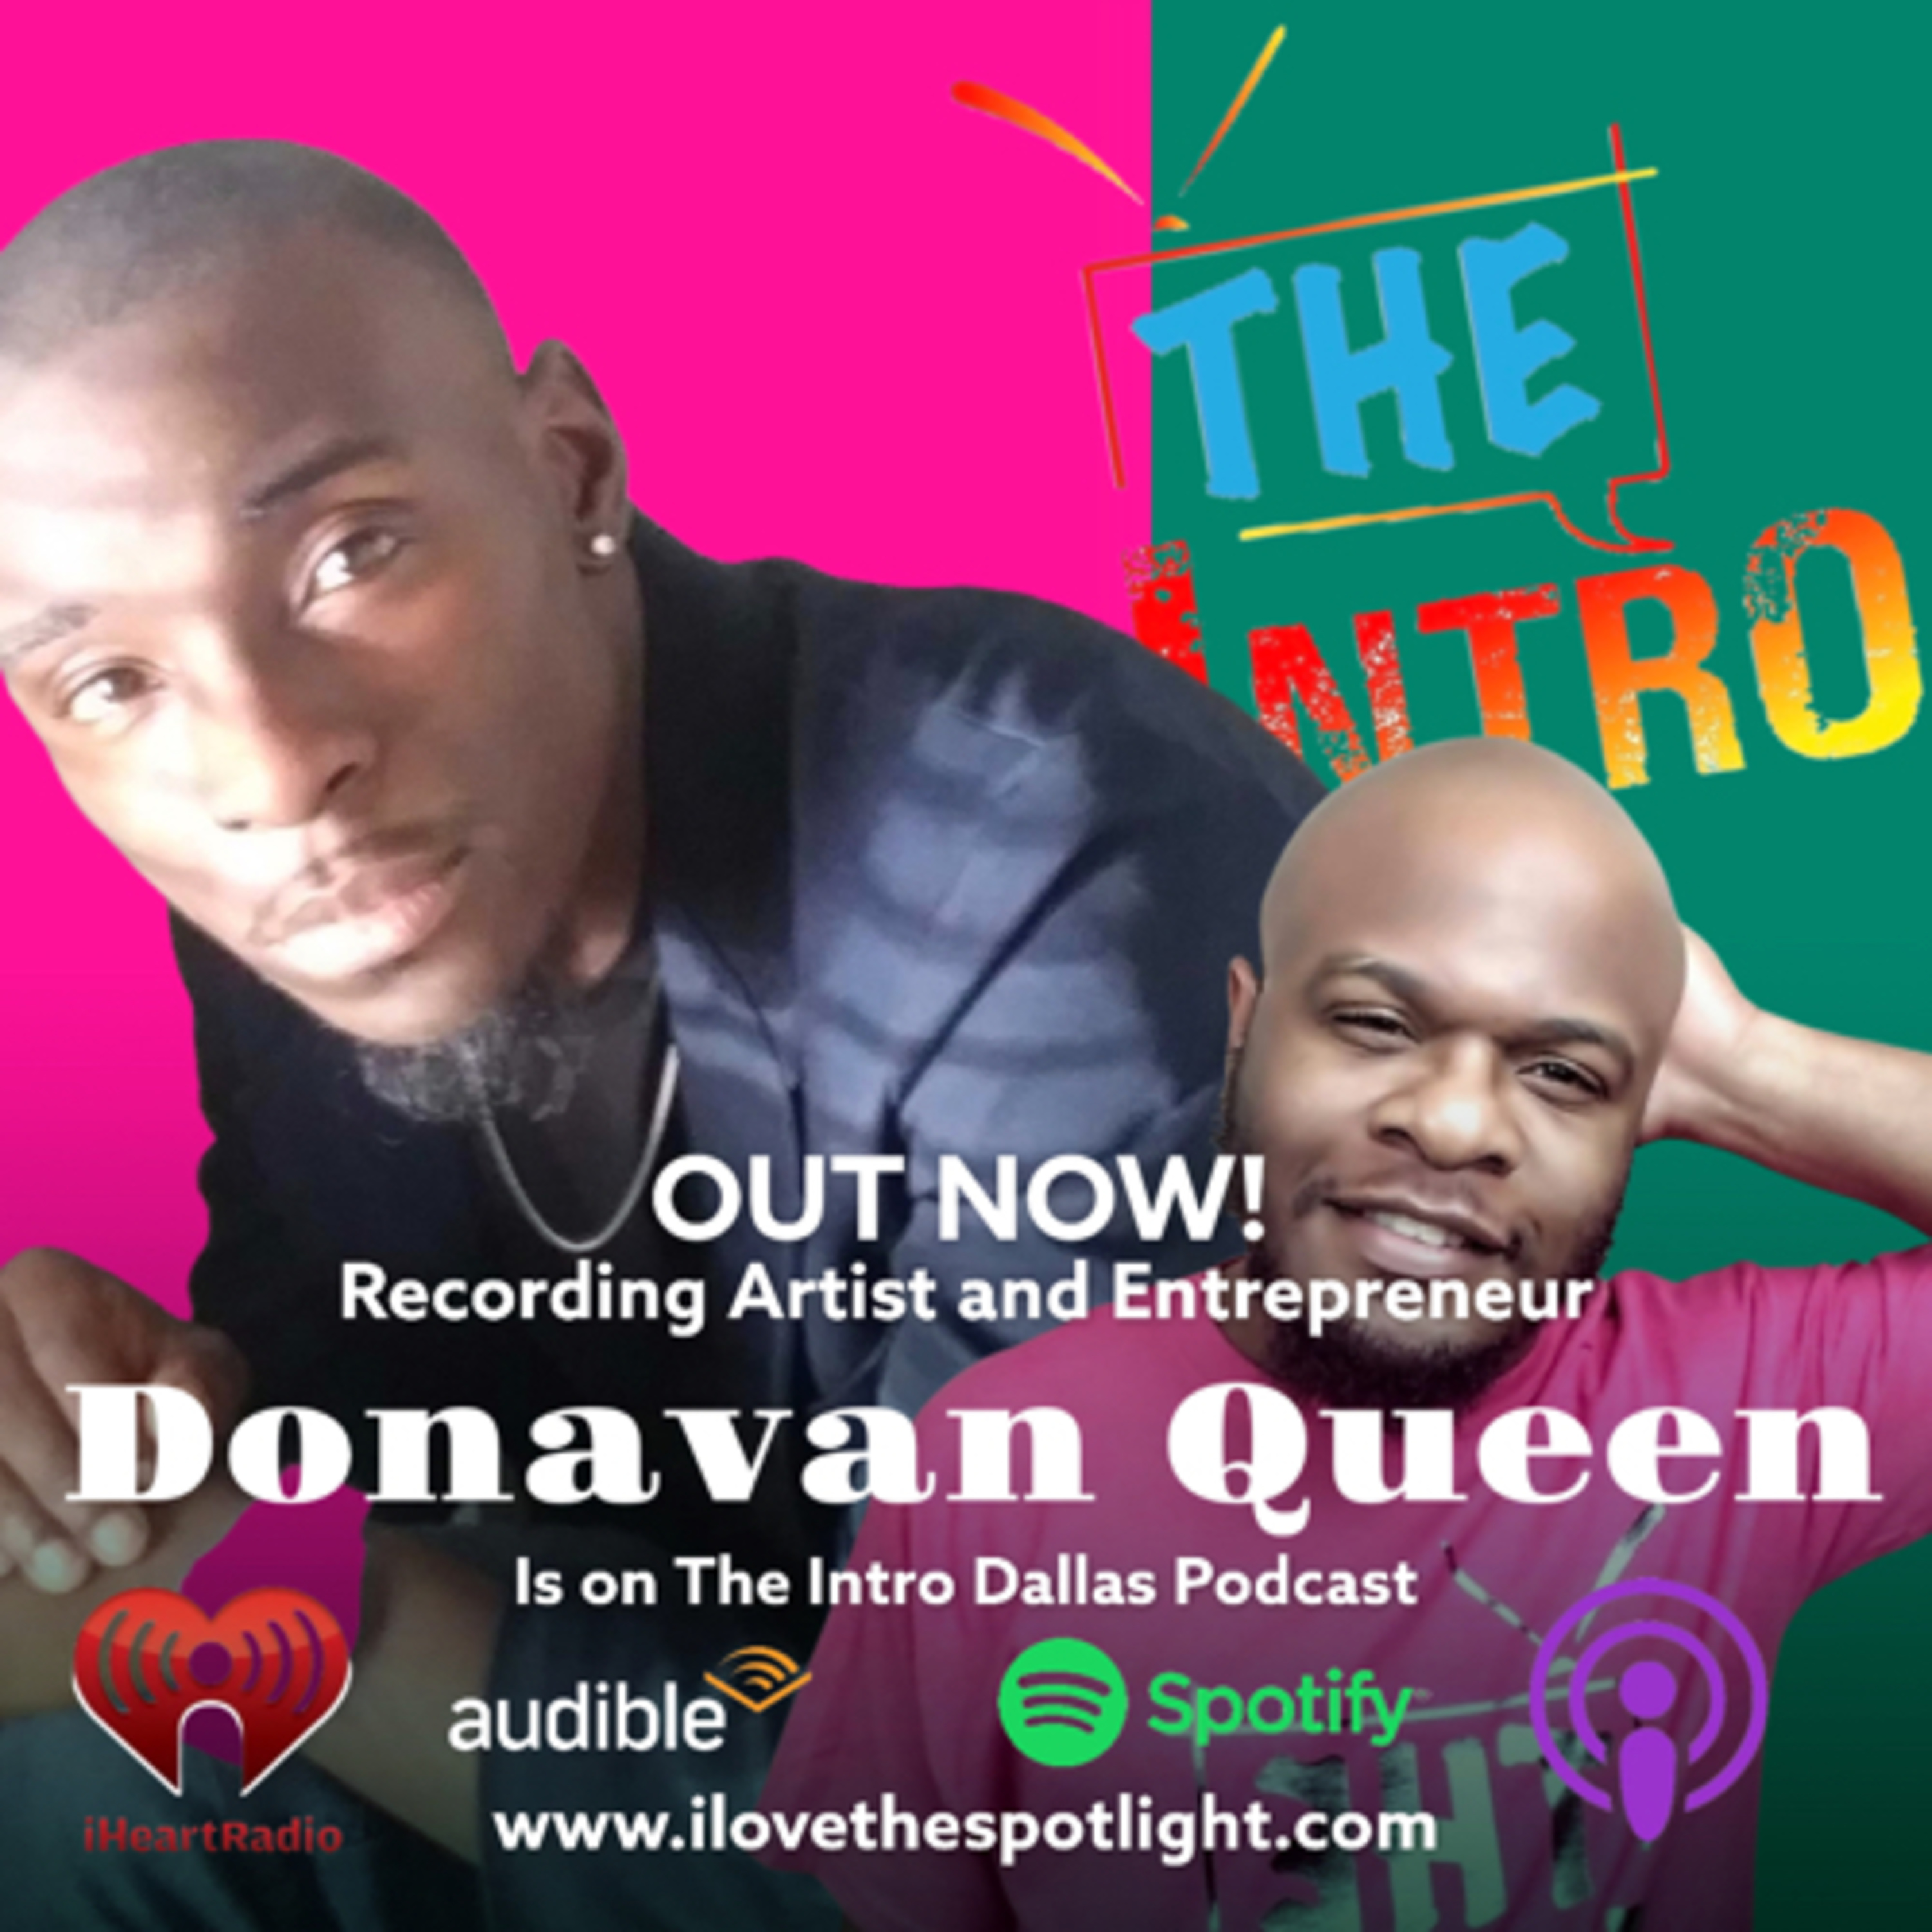 S2 Ep 7 Recording Artist Donavan Queen visits The Intro Dallas Podcast